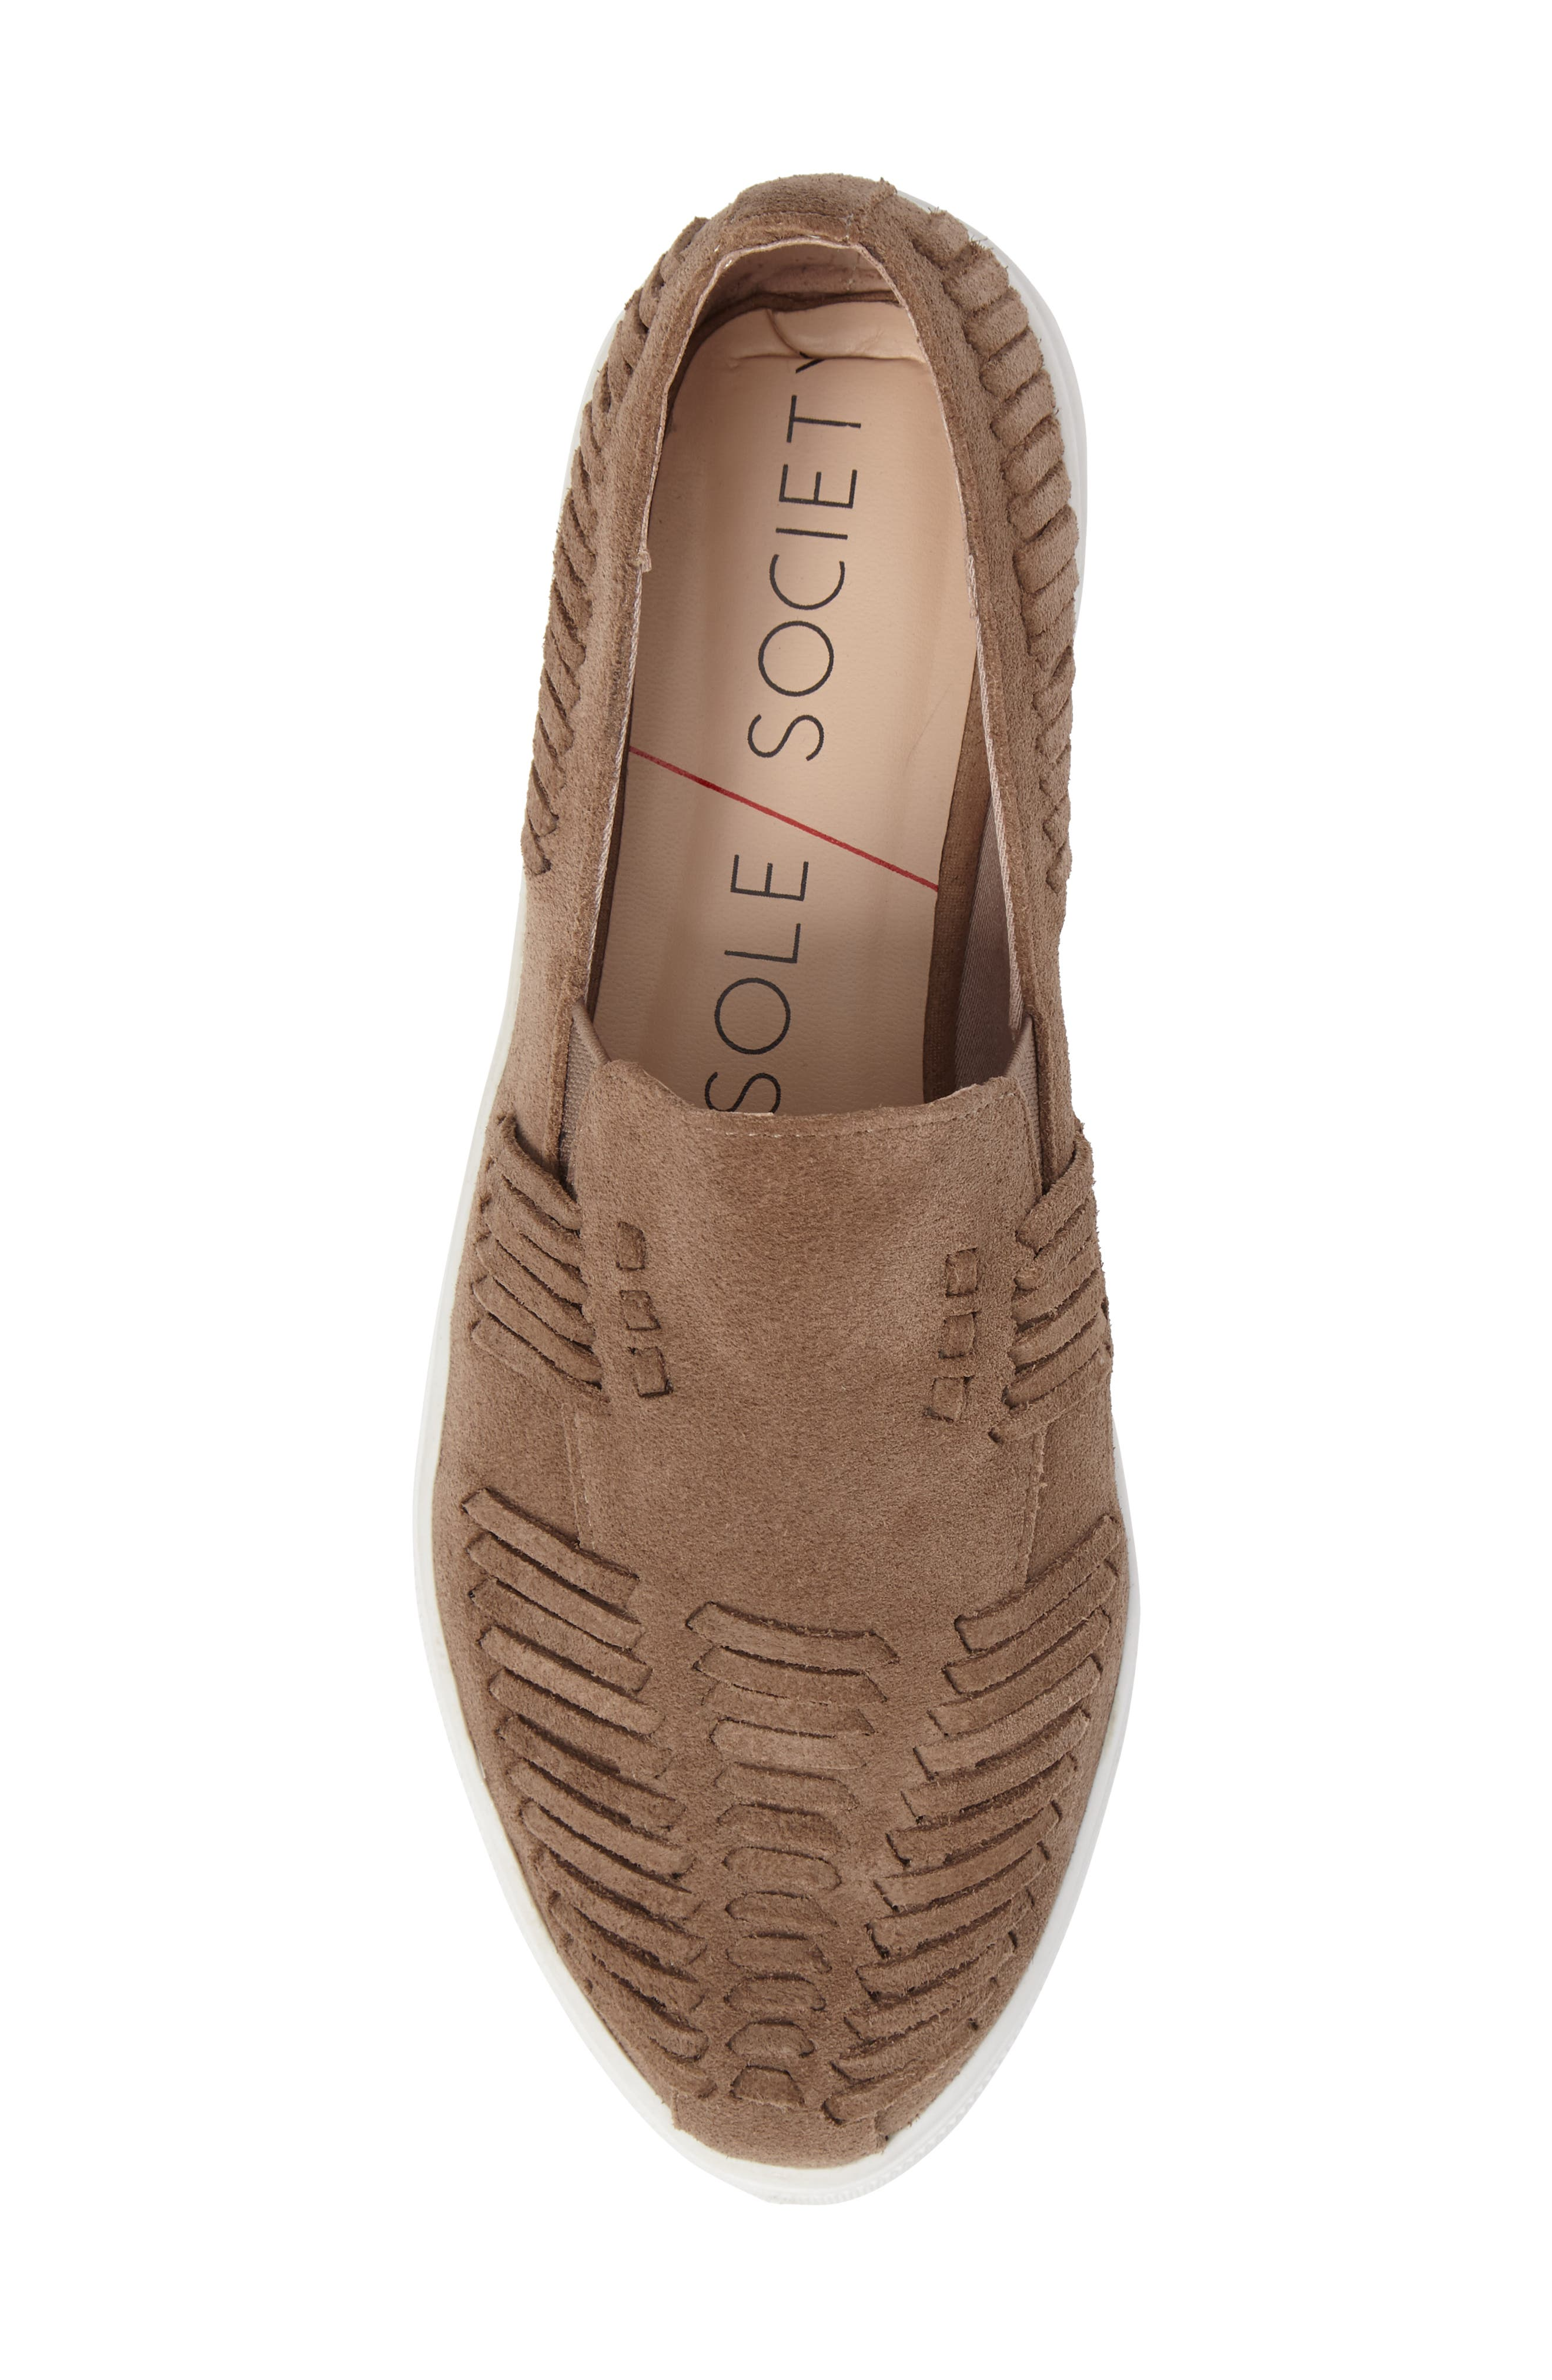 Rocco Woven Slip-On Sneaker,                             Alternate thumbnail 5, color,                             Taupe Suede